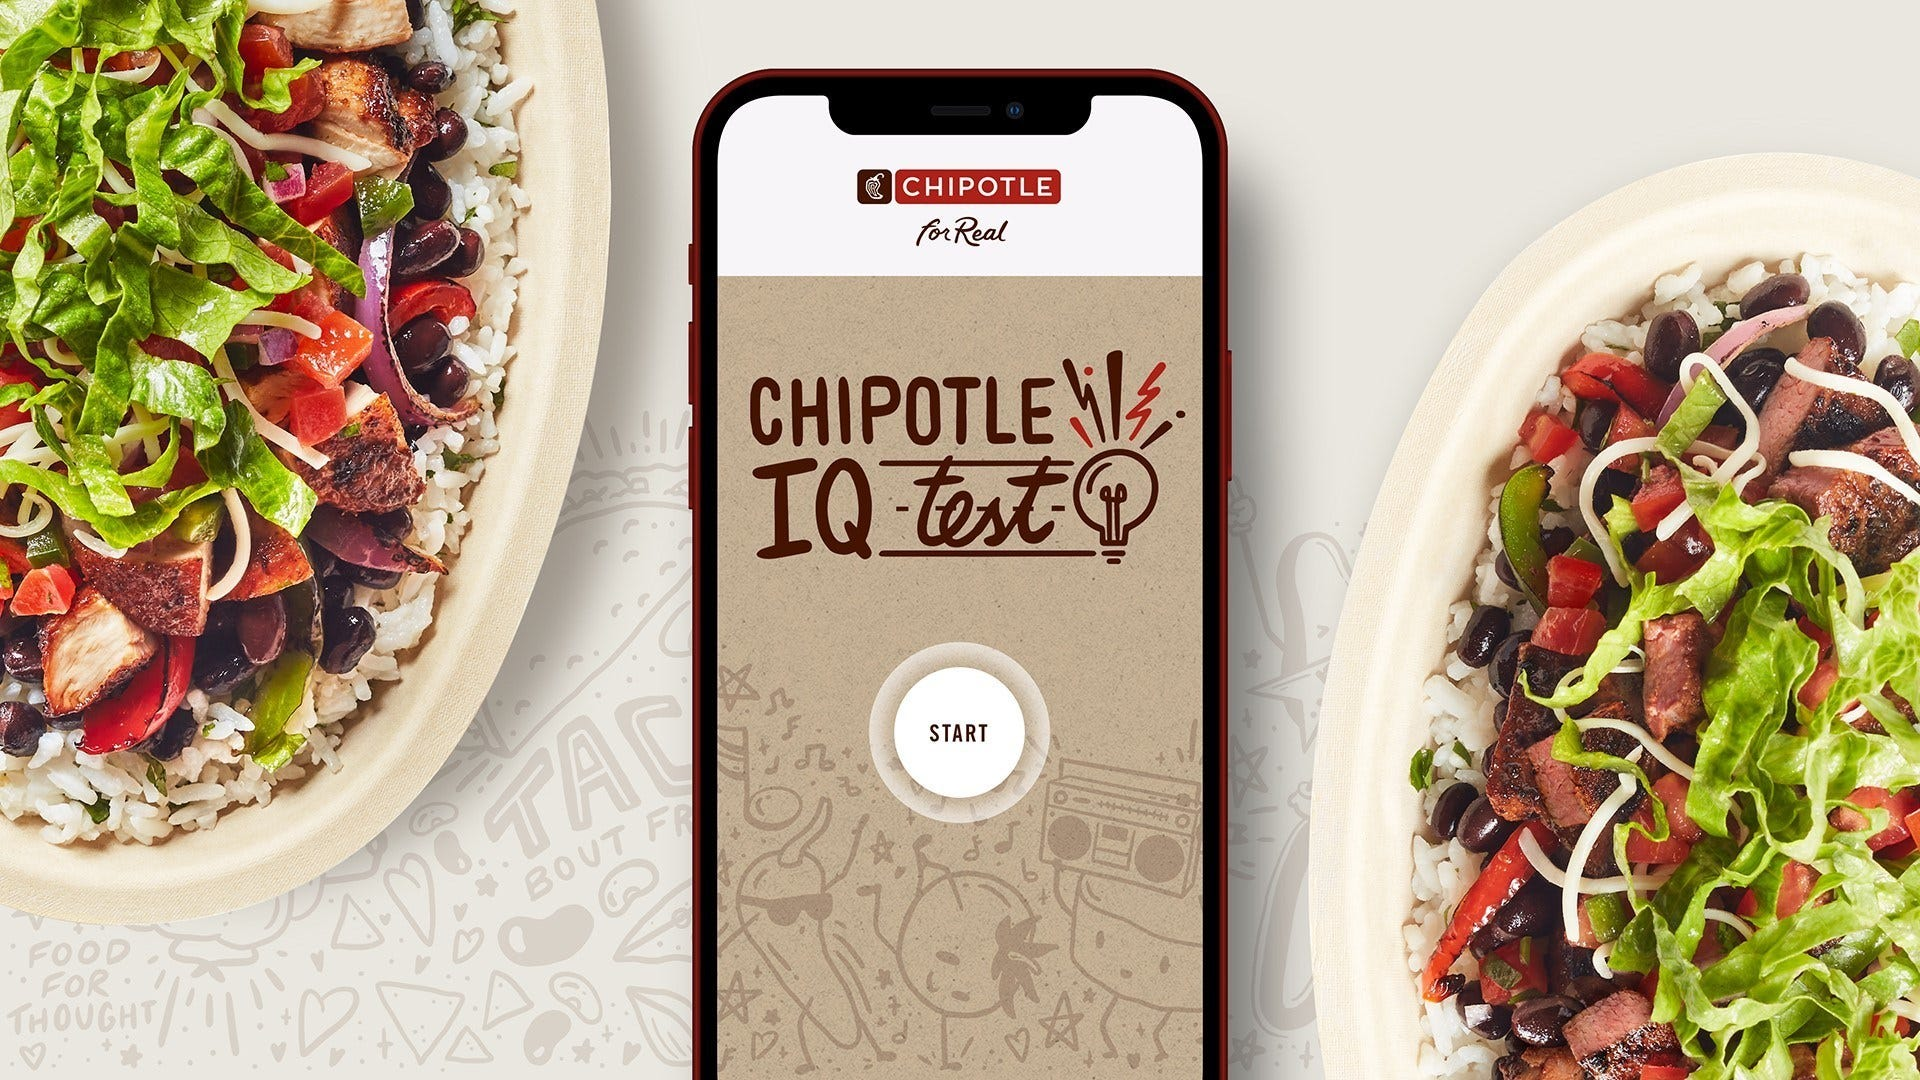 Chipotle IQ game is back for Cinco de Mayo with 250,000 buy-one-get-one free coupon codes